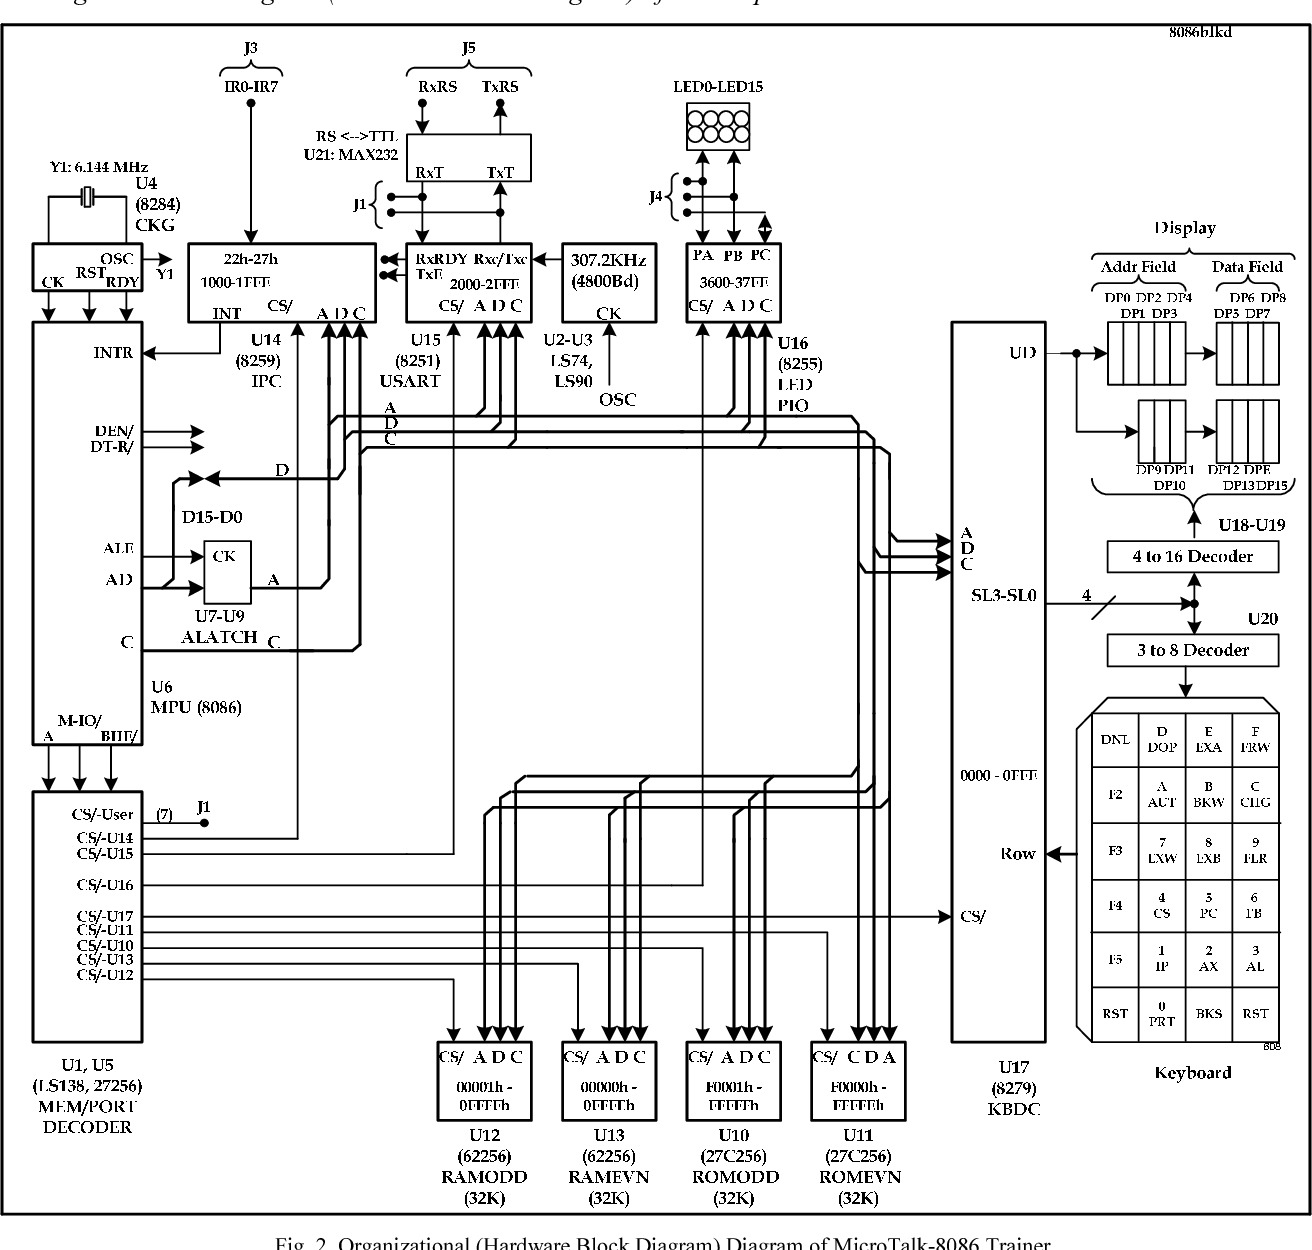 Intel 8086 Circuit Diagram 2018 Wire Diagrams Of 8085 Microprocessor Development A 16 Bit Learning System Using 8088 2 Organizational Hardware